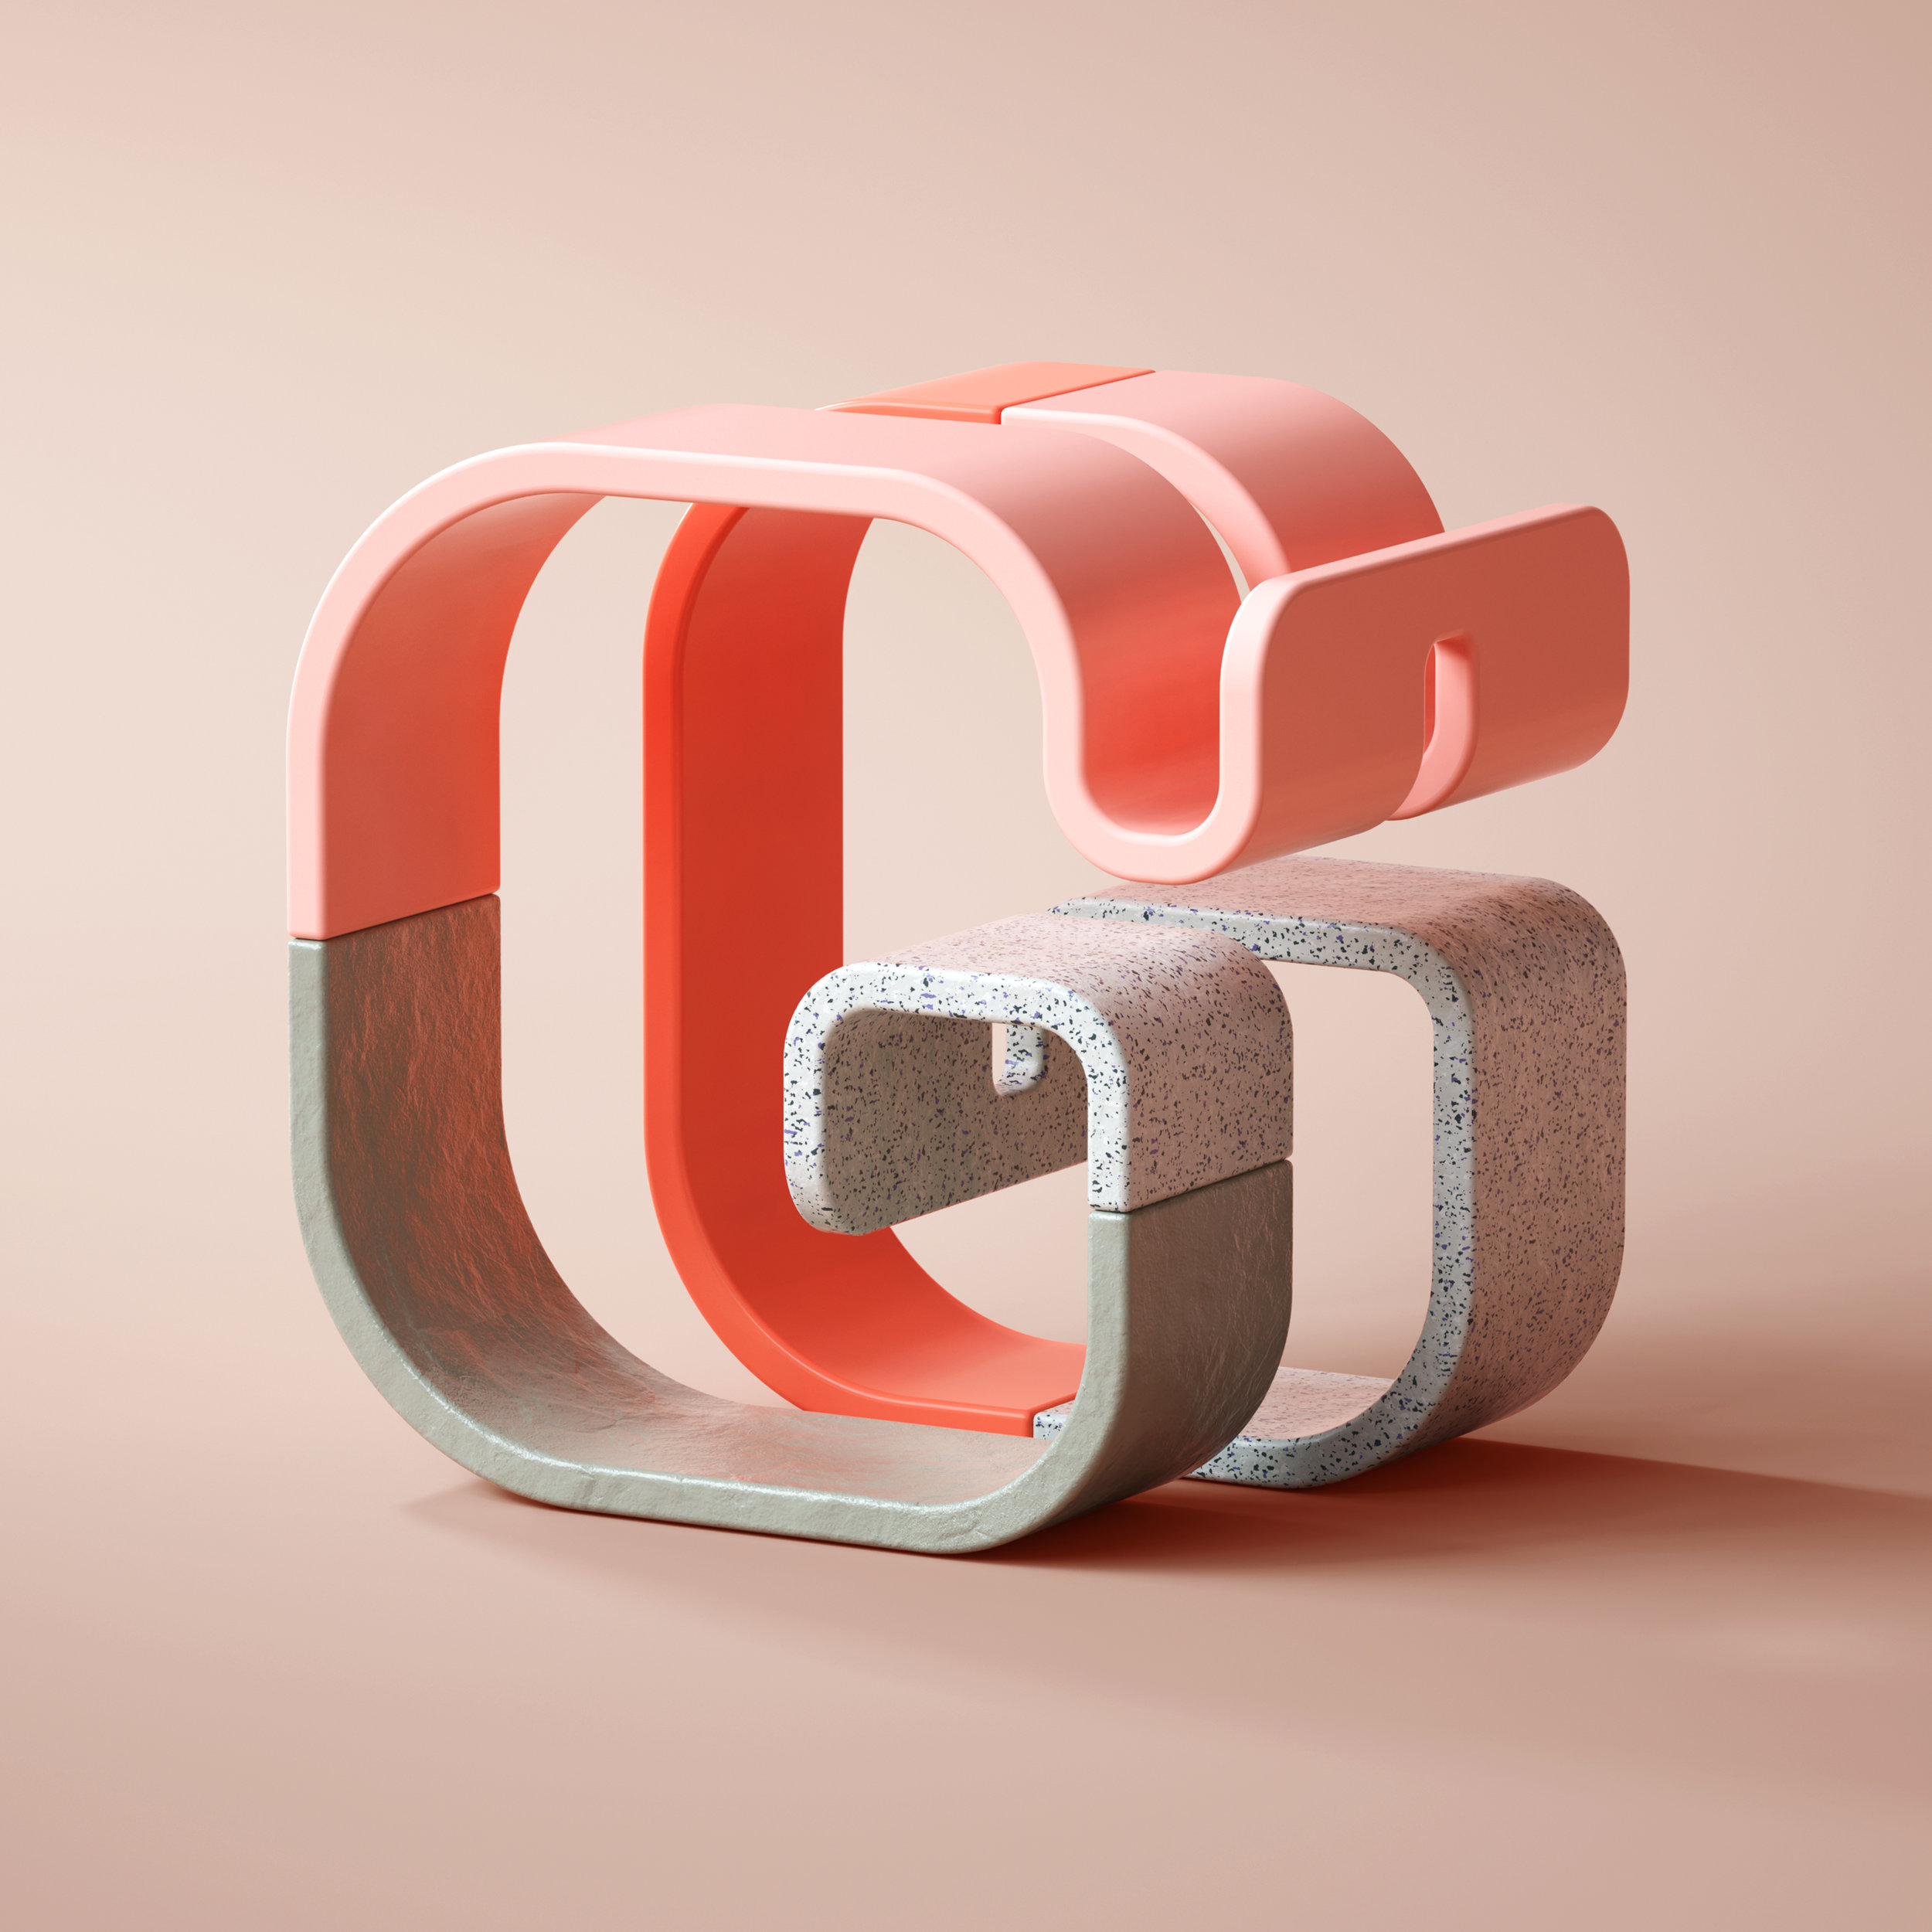 36 Days of Type 2019 - 3D Typeform letter G visual.